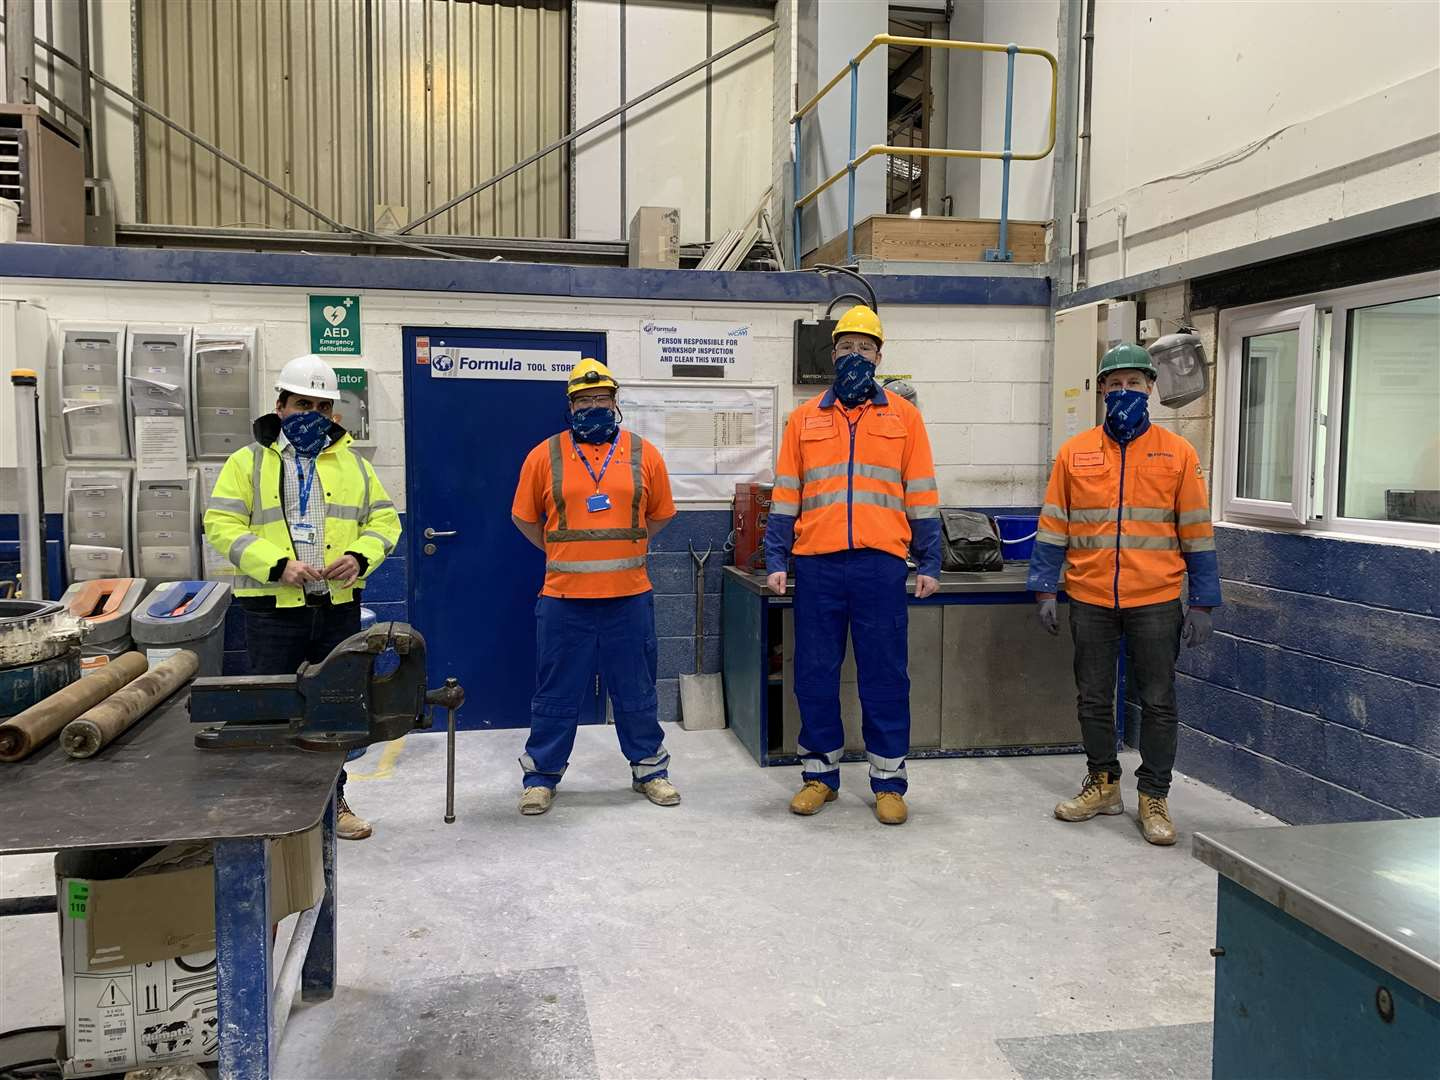 Celebrating dual skilling apprentices at Saint-Gobain Formula's Jericho Works - from left to right: Jamal Chaya, Plant Manager; Daniel Crevald, Electrical Apprentice; Jamie Dawes, Electrical Apprentice; andDaniel King, Engineering Manager. (44265872)